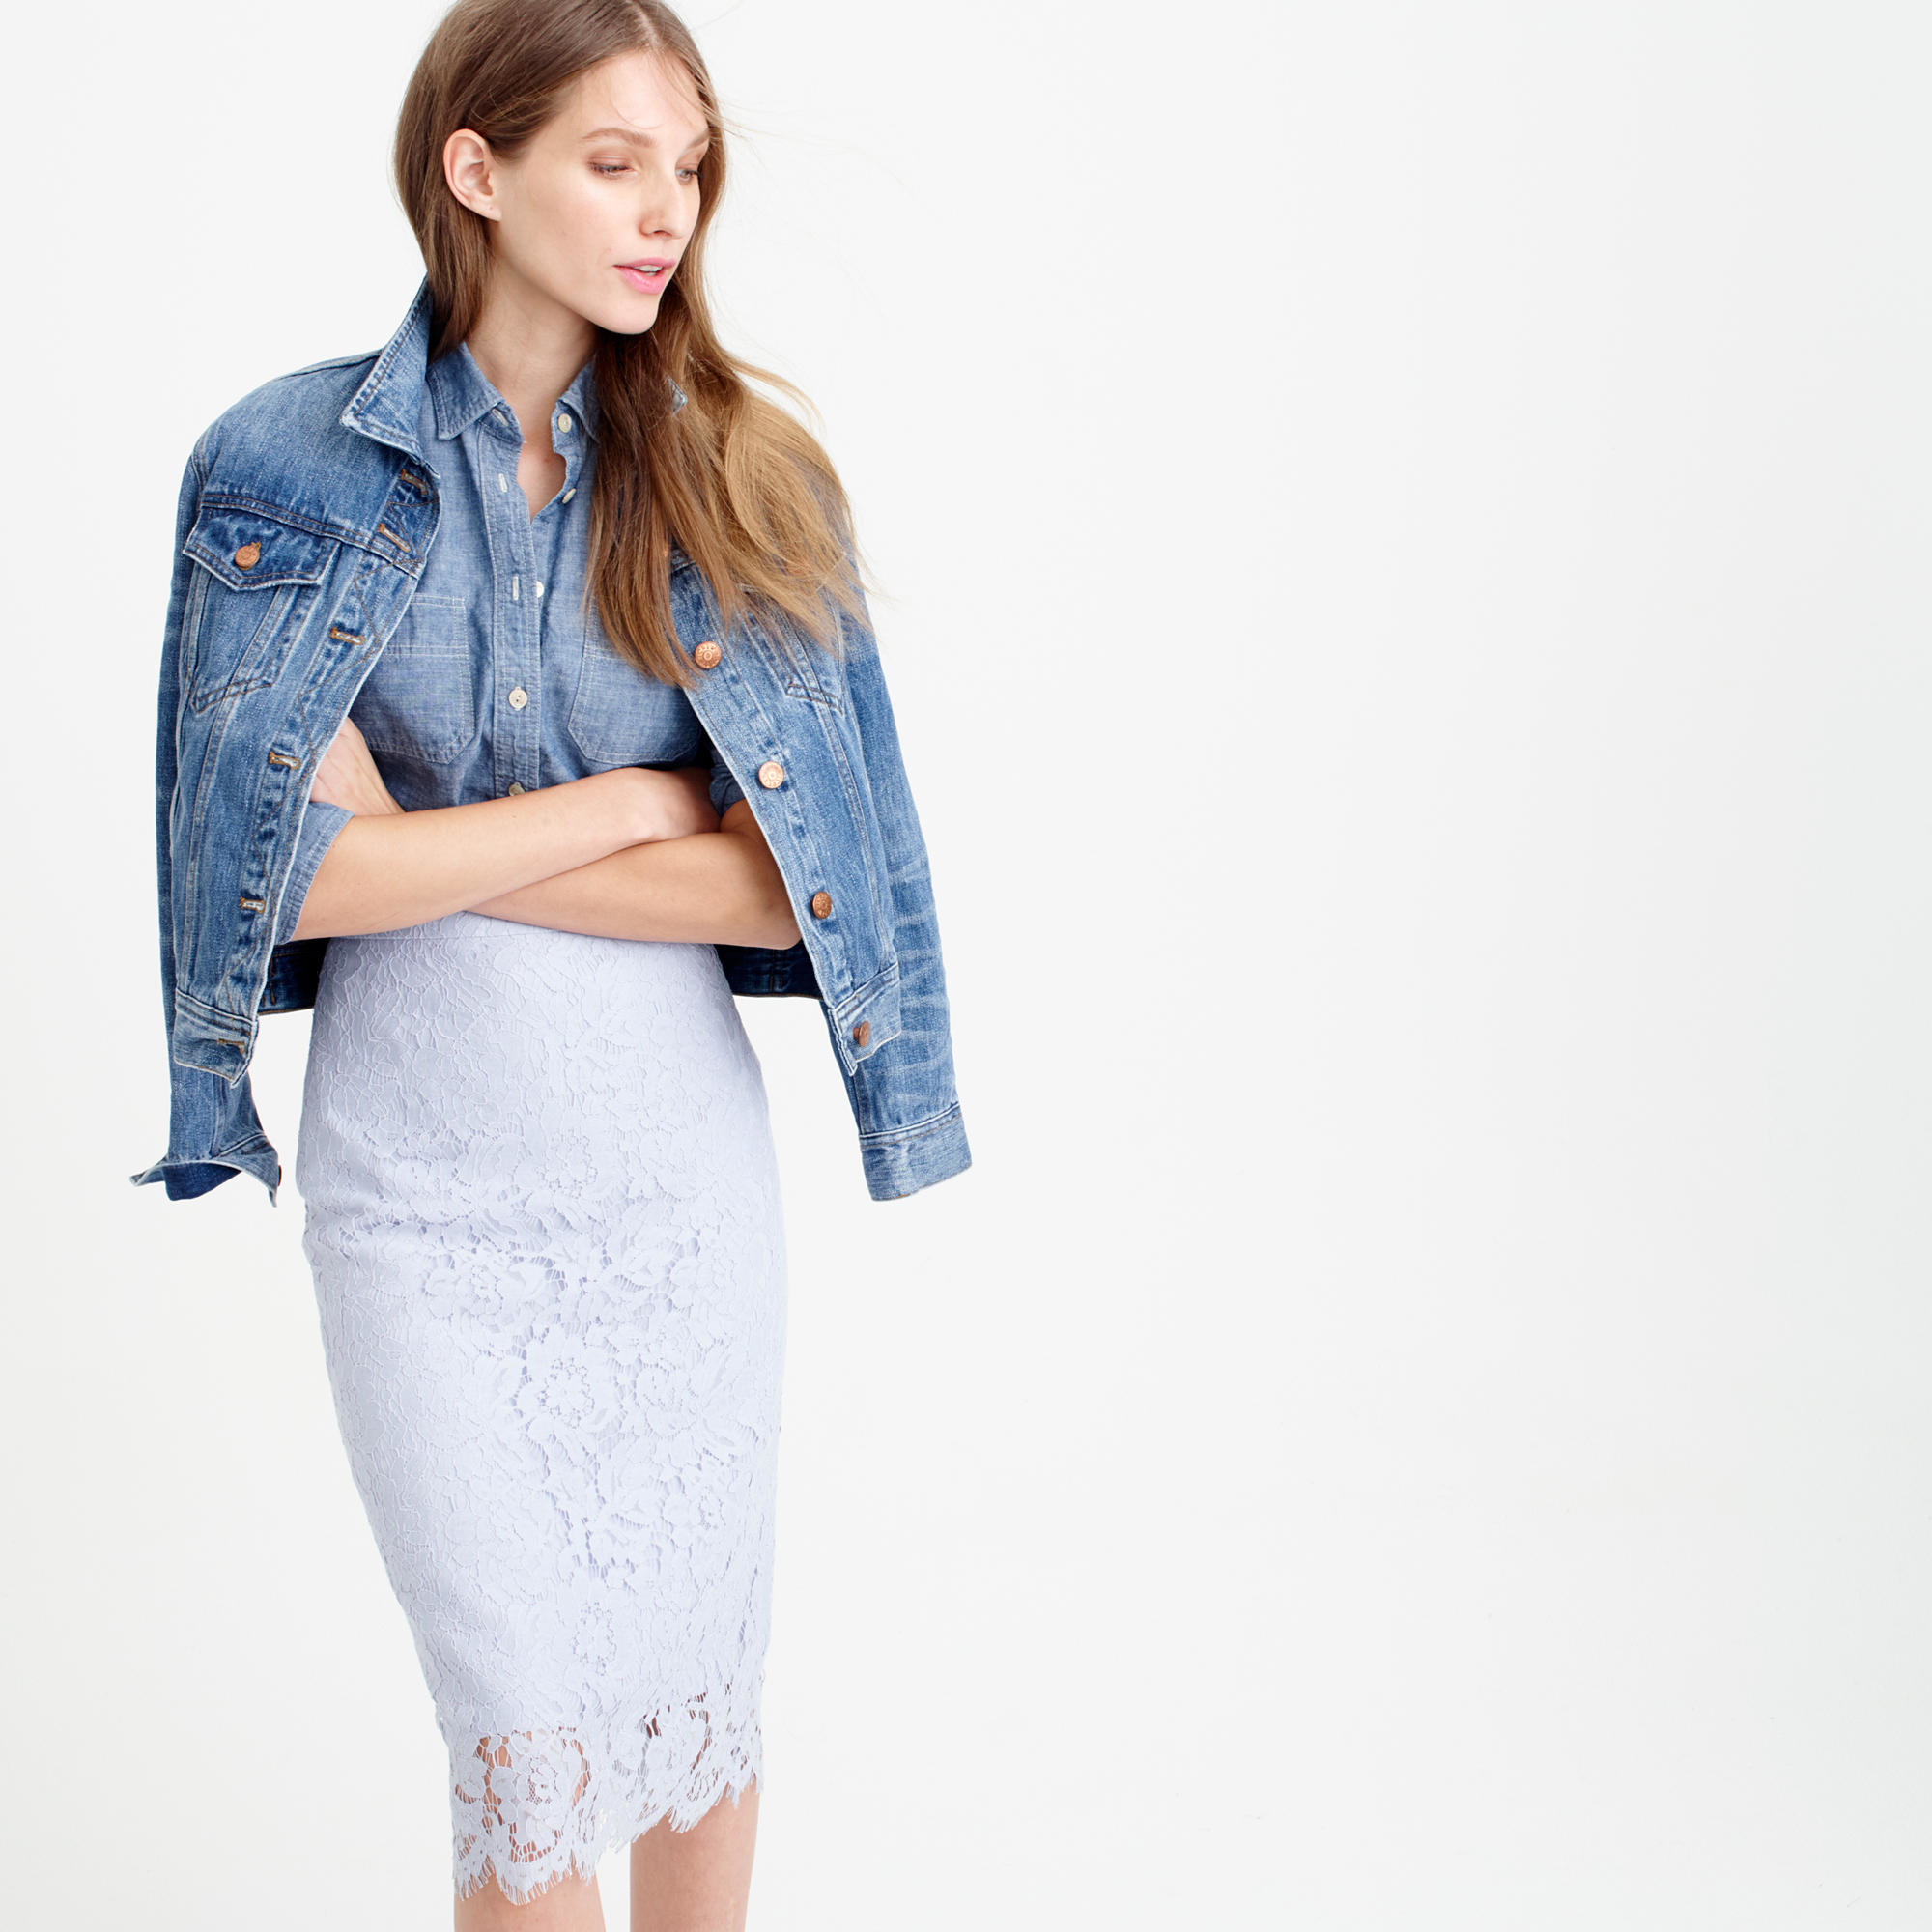 J.crew Collection Lace Pencil Skirt in Purple | Lyst